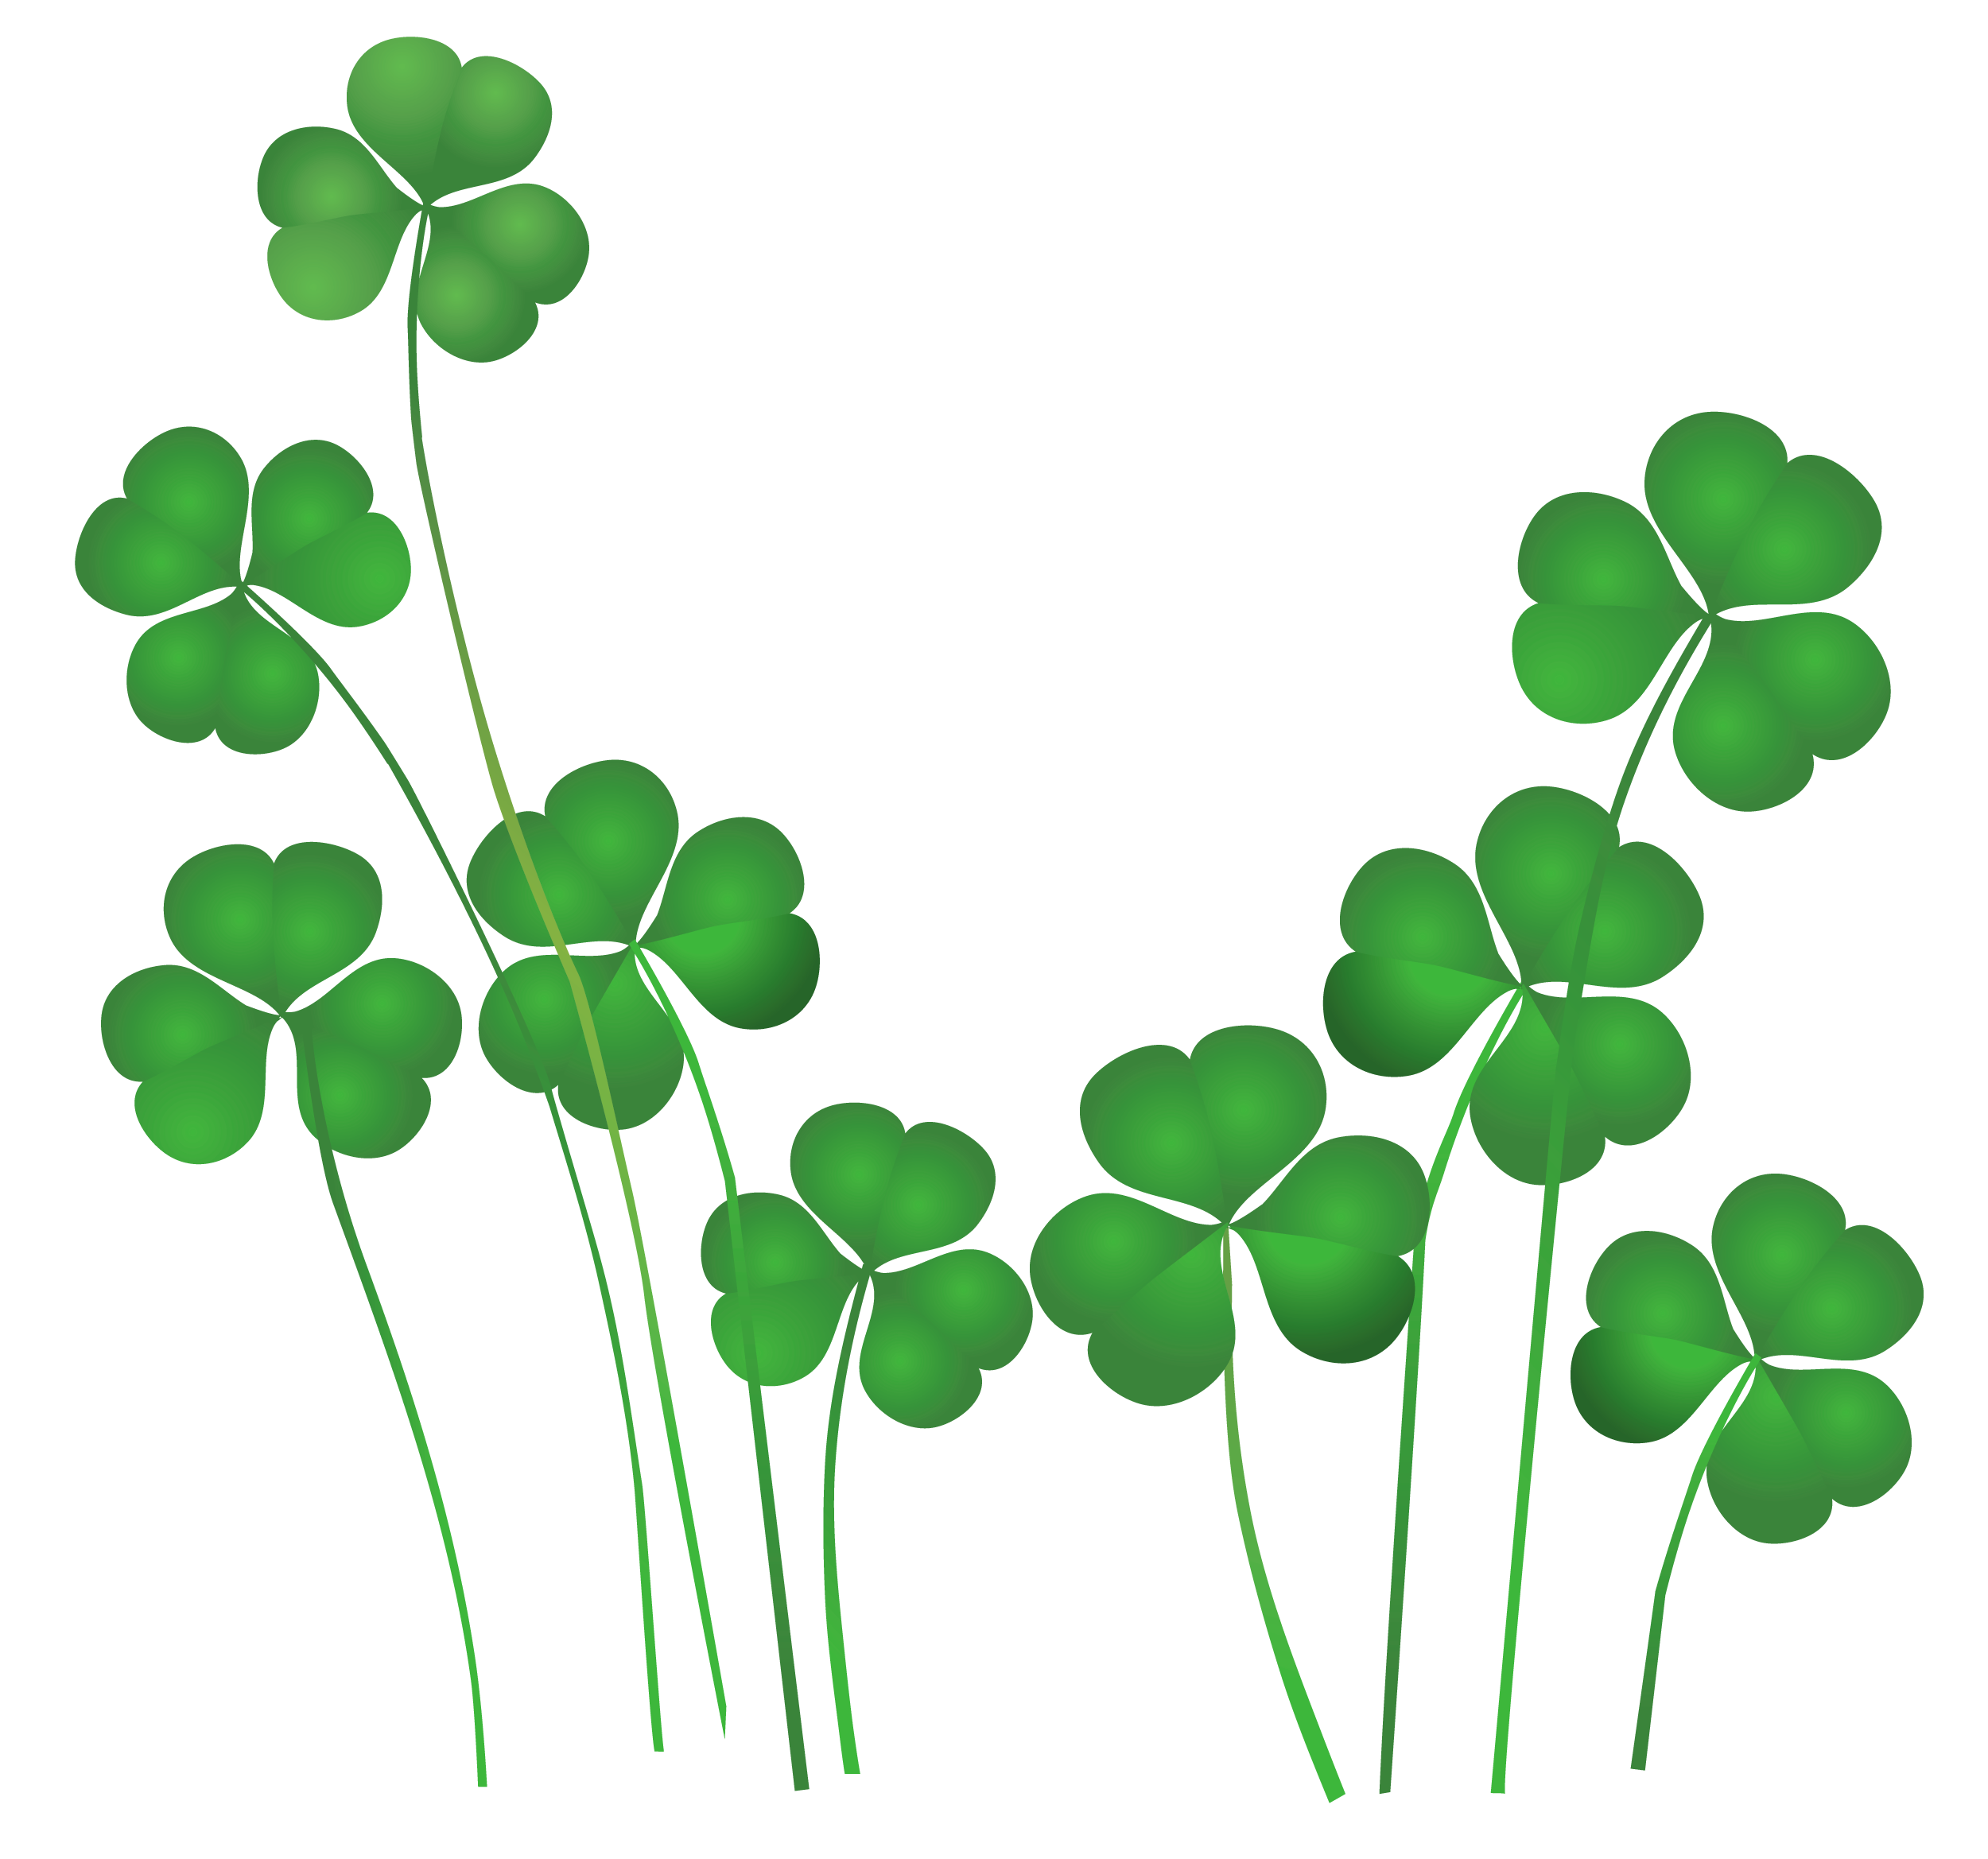 Heart clover clipart transparent library St. Patrick's Day Weekend | News Center | St. Patrick's Day ... transparent library